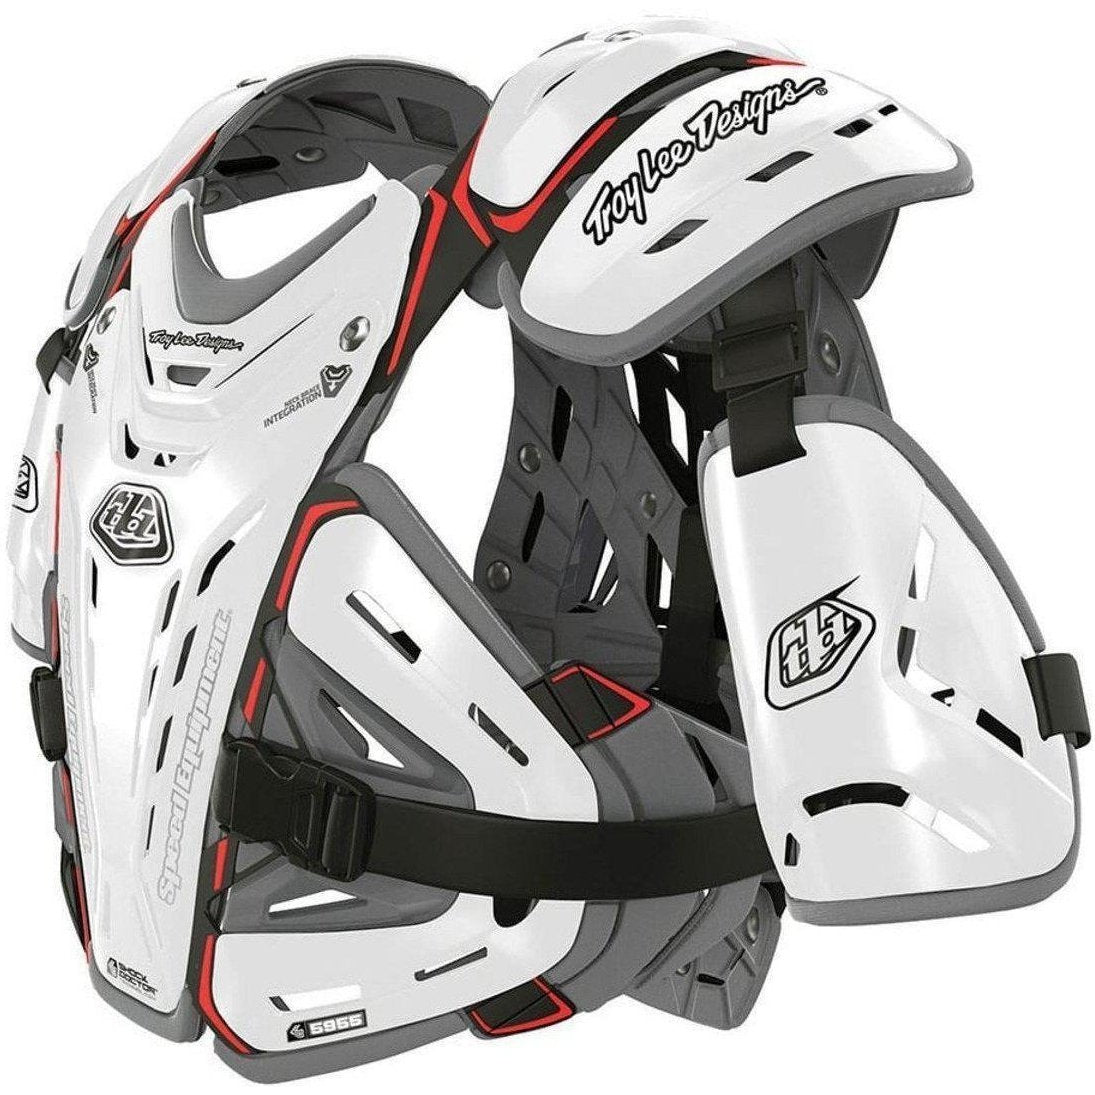 Troy Lee Designs-Troy Lee Designs 5955 Youth Body Guard Protection-WHITE-YOUTH-TLD503003103-saddleback-elite-performance-cycling